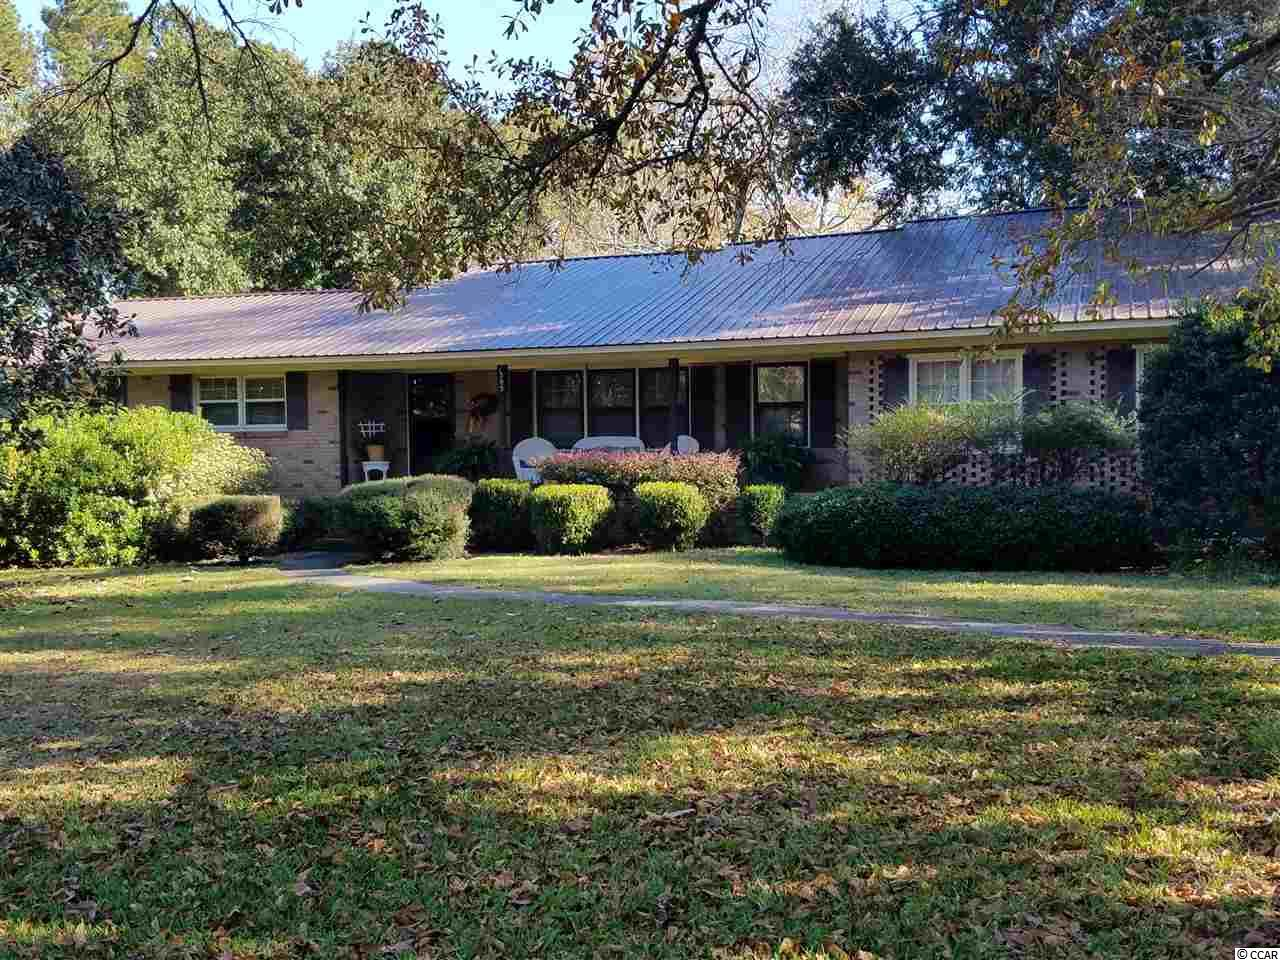 Sprawling Brick Ranch with two master suites, large great room, study, formal dining room, Living room, large closets, wet bar, fireplaces, and more. Fireplace is wood burning with a blower. Located in close proximity to Downtown Conway and Myrtle Beach. Don't let this custom home pass you by.